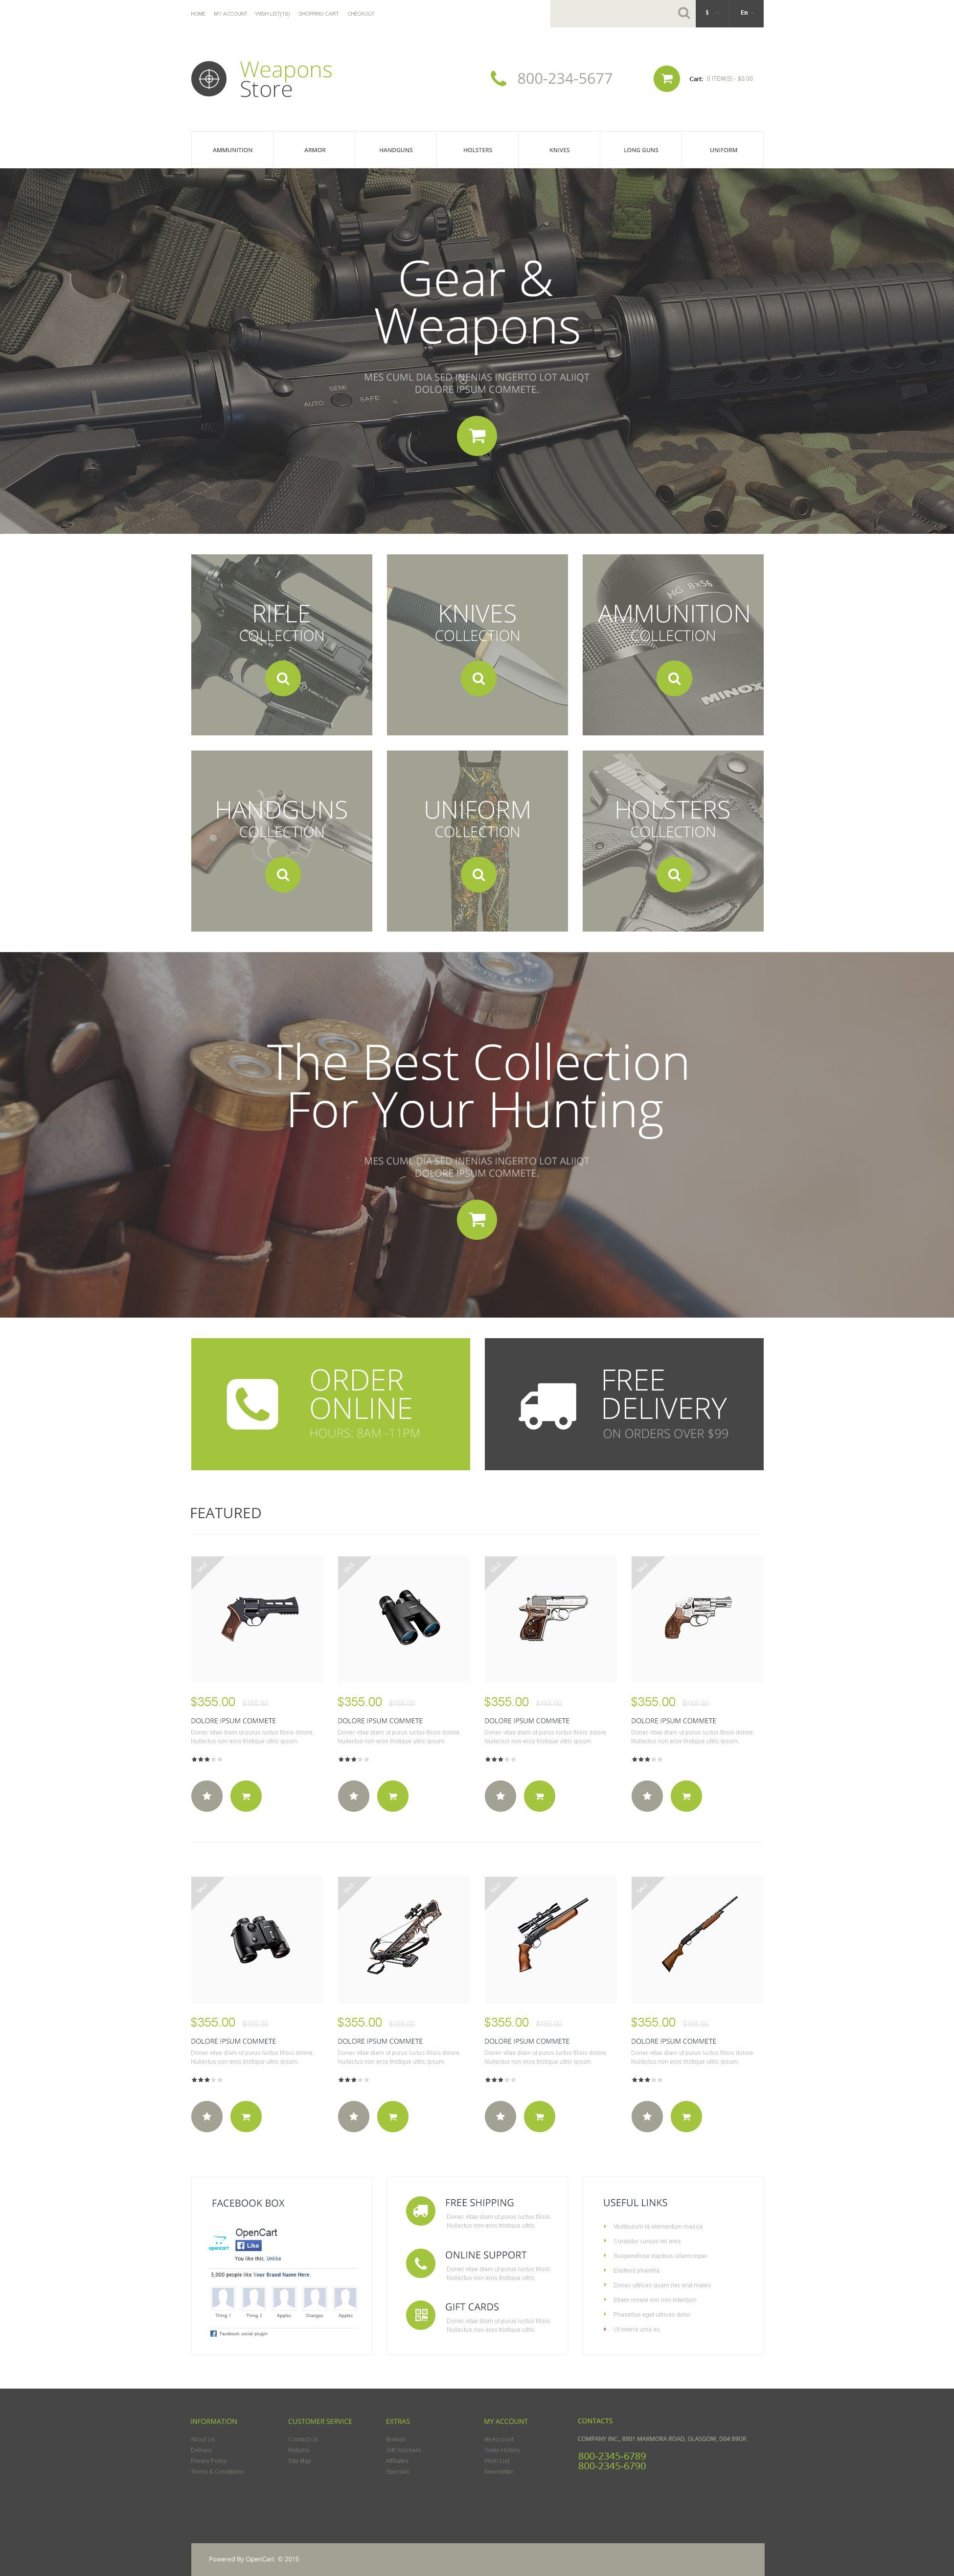 The Weapon Store OpenCart Design 53162, one of the best OpenCart templates of its kind (sport, most popular), also known as weapon store OpenCart template, shop OpenCart template, online products OpenCart template, shoot OpenCart template, gun OpenCart template, Walter TT Taser Savage Colt Glock Ruger Smith & Wesson Remington Winchester Browning Marlin Military Firearms organization OpenCart template, gun OpenCart template, part OpenCart template, firearm OpenCart template, ammunition OpenCart template, accessories OpenCart template, grip OpenCart template, clip OpenCart template, bolt OpenCart template, ejector OpenCart template, extractor OpenCart template, trigger OpenCart template, scope and related with weapon store, shop, online products, shoot, gun, Walter TT Taser Savage Colt Glock Ruger Smith & Wesson Remington Winchester Browning Marlin Military Firearms organization, gun, part, firearm, ammunition, accessories, grip, clip, bolt, ejector, extractor, trigger, scope, etc.